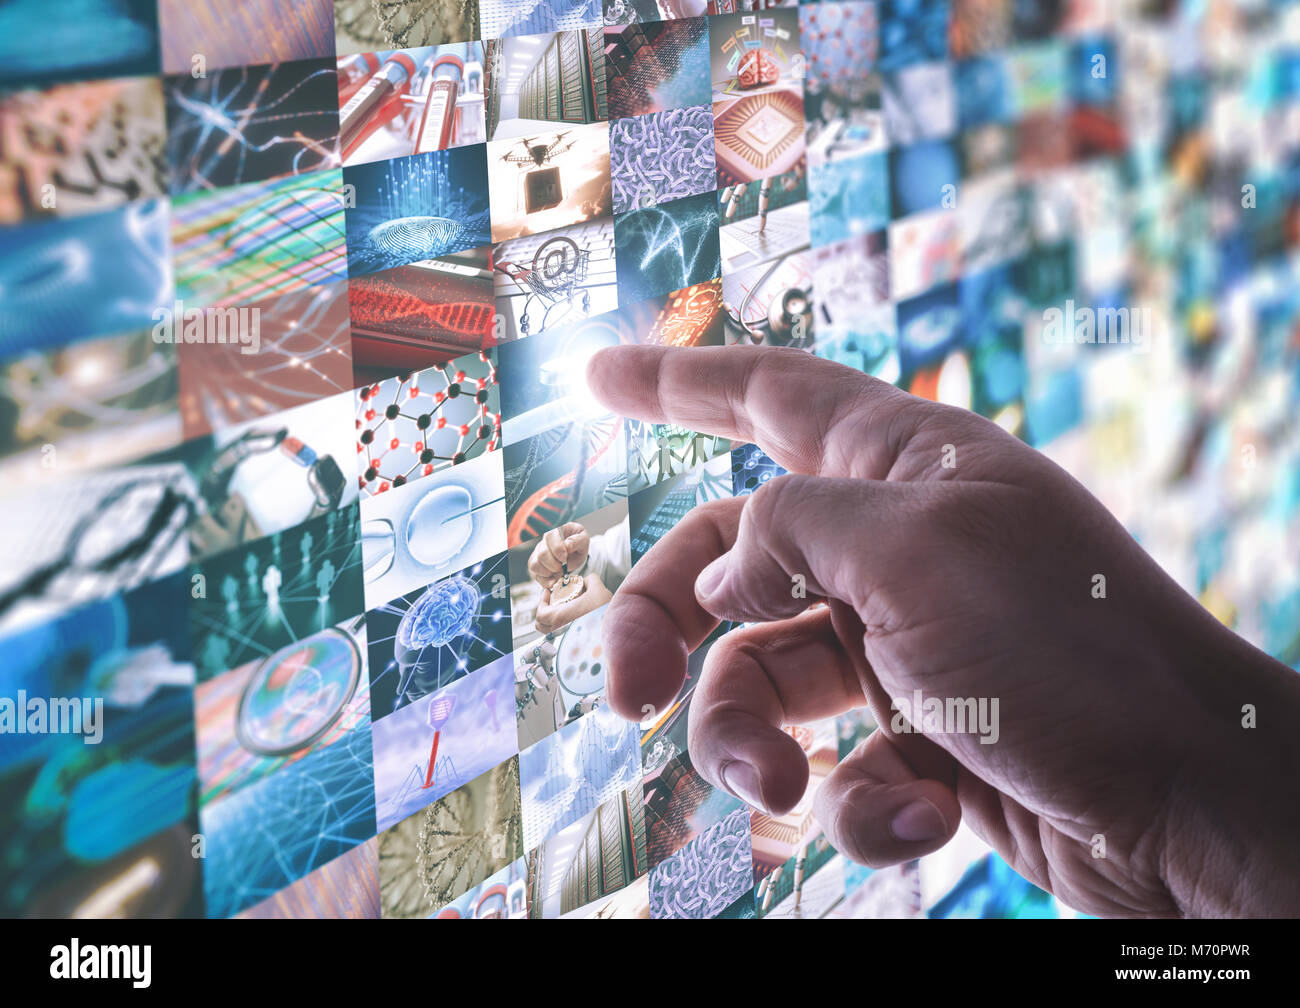 The hand touches the touchscreen led panel with various images about technology and science. - Stock Image